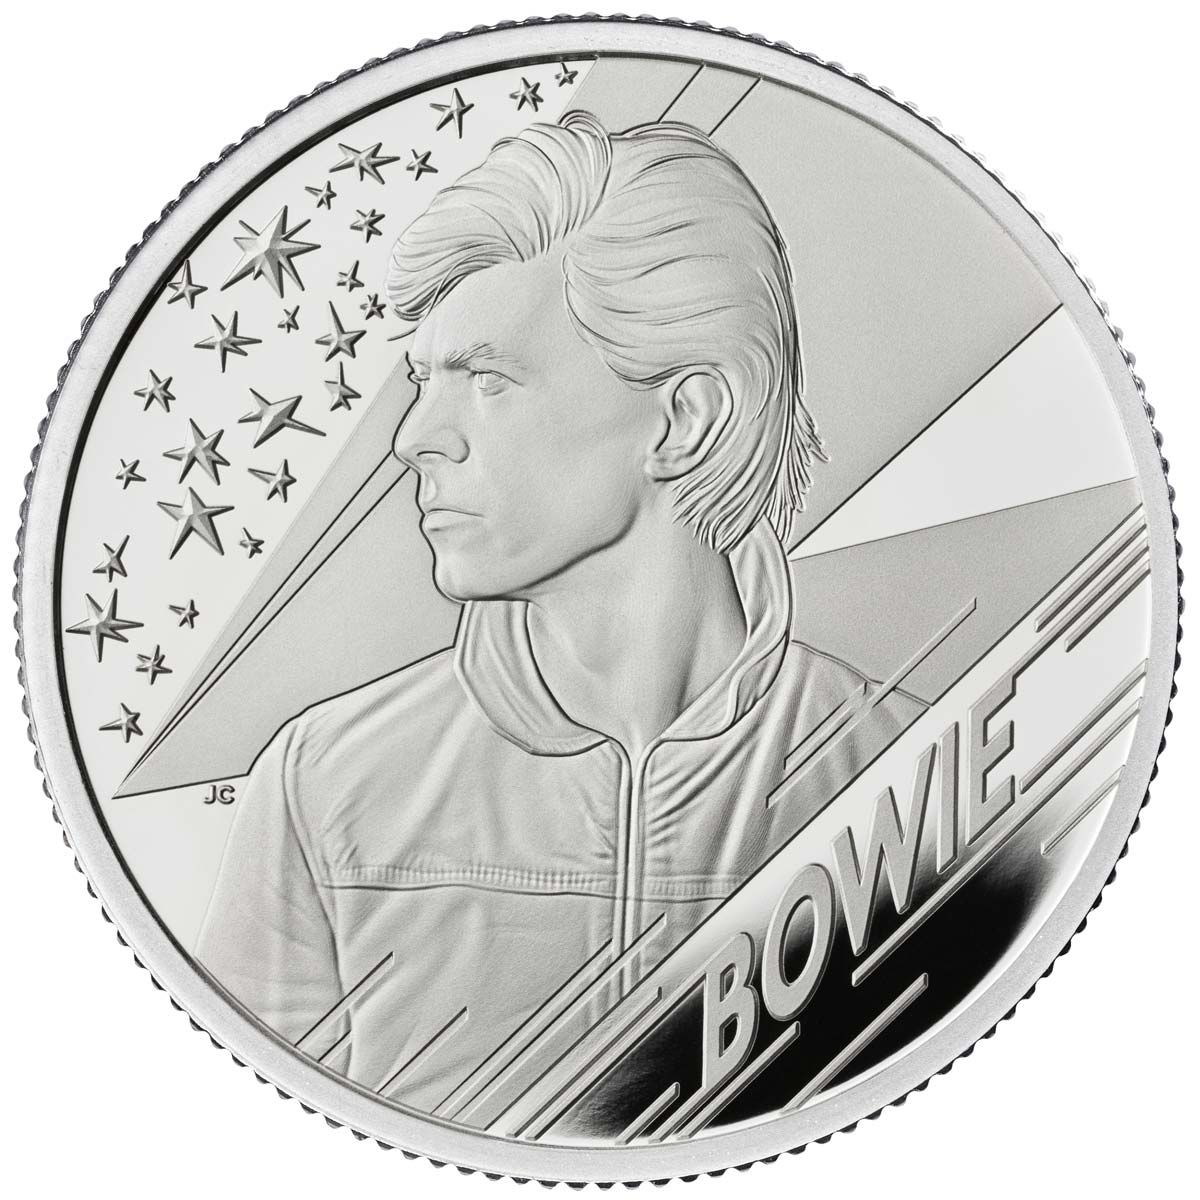 DAVID BOWIE 2020 UK two ounce silver proof coin